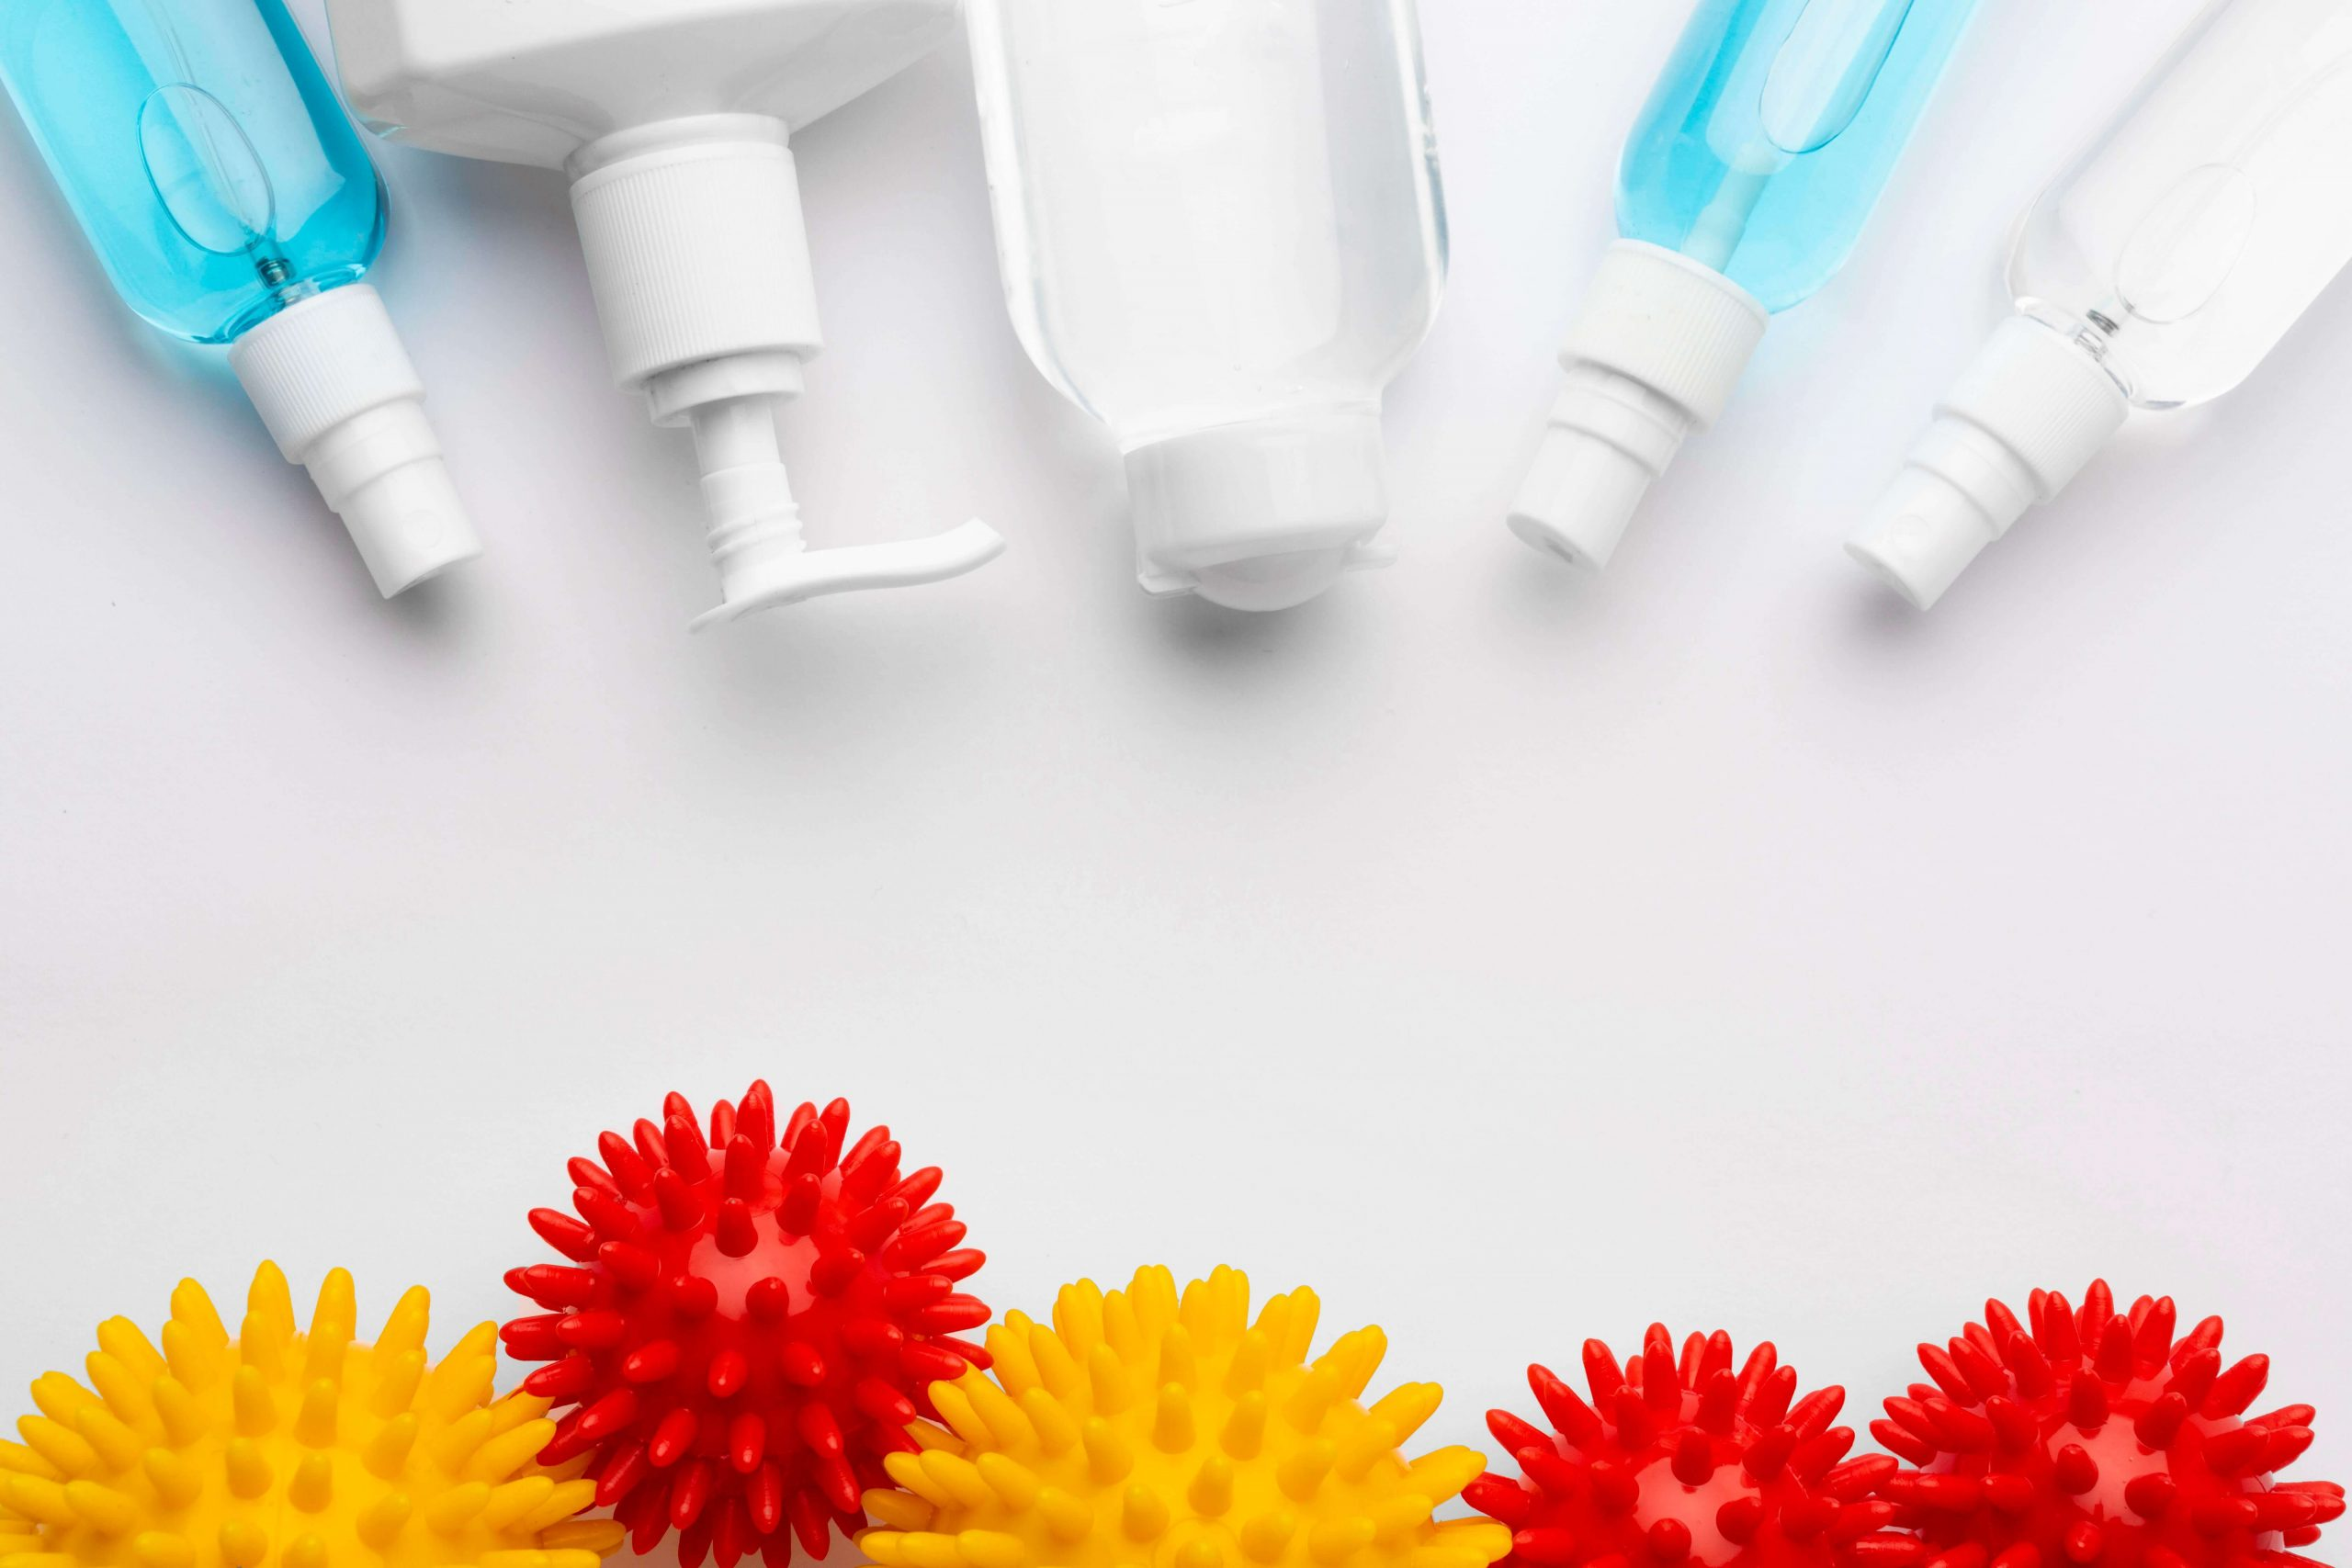 Difference between hand sanitizer spray, gel, and foam